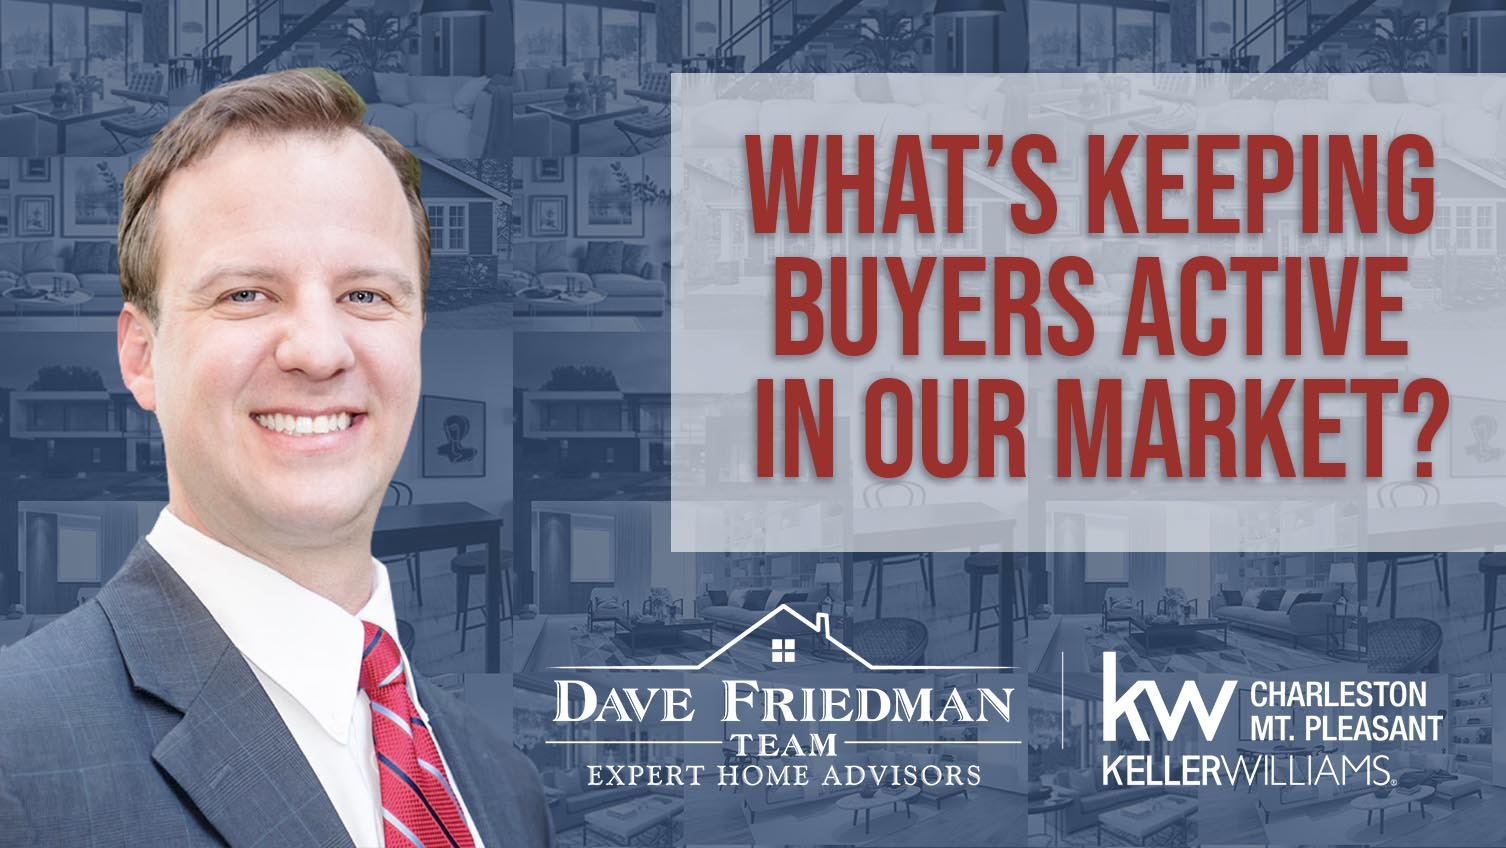 Q: What's Keeping Buyers Active in Our Market?